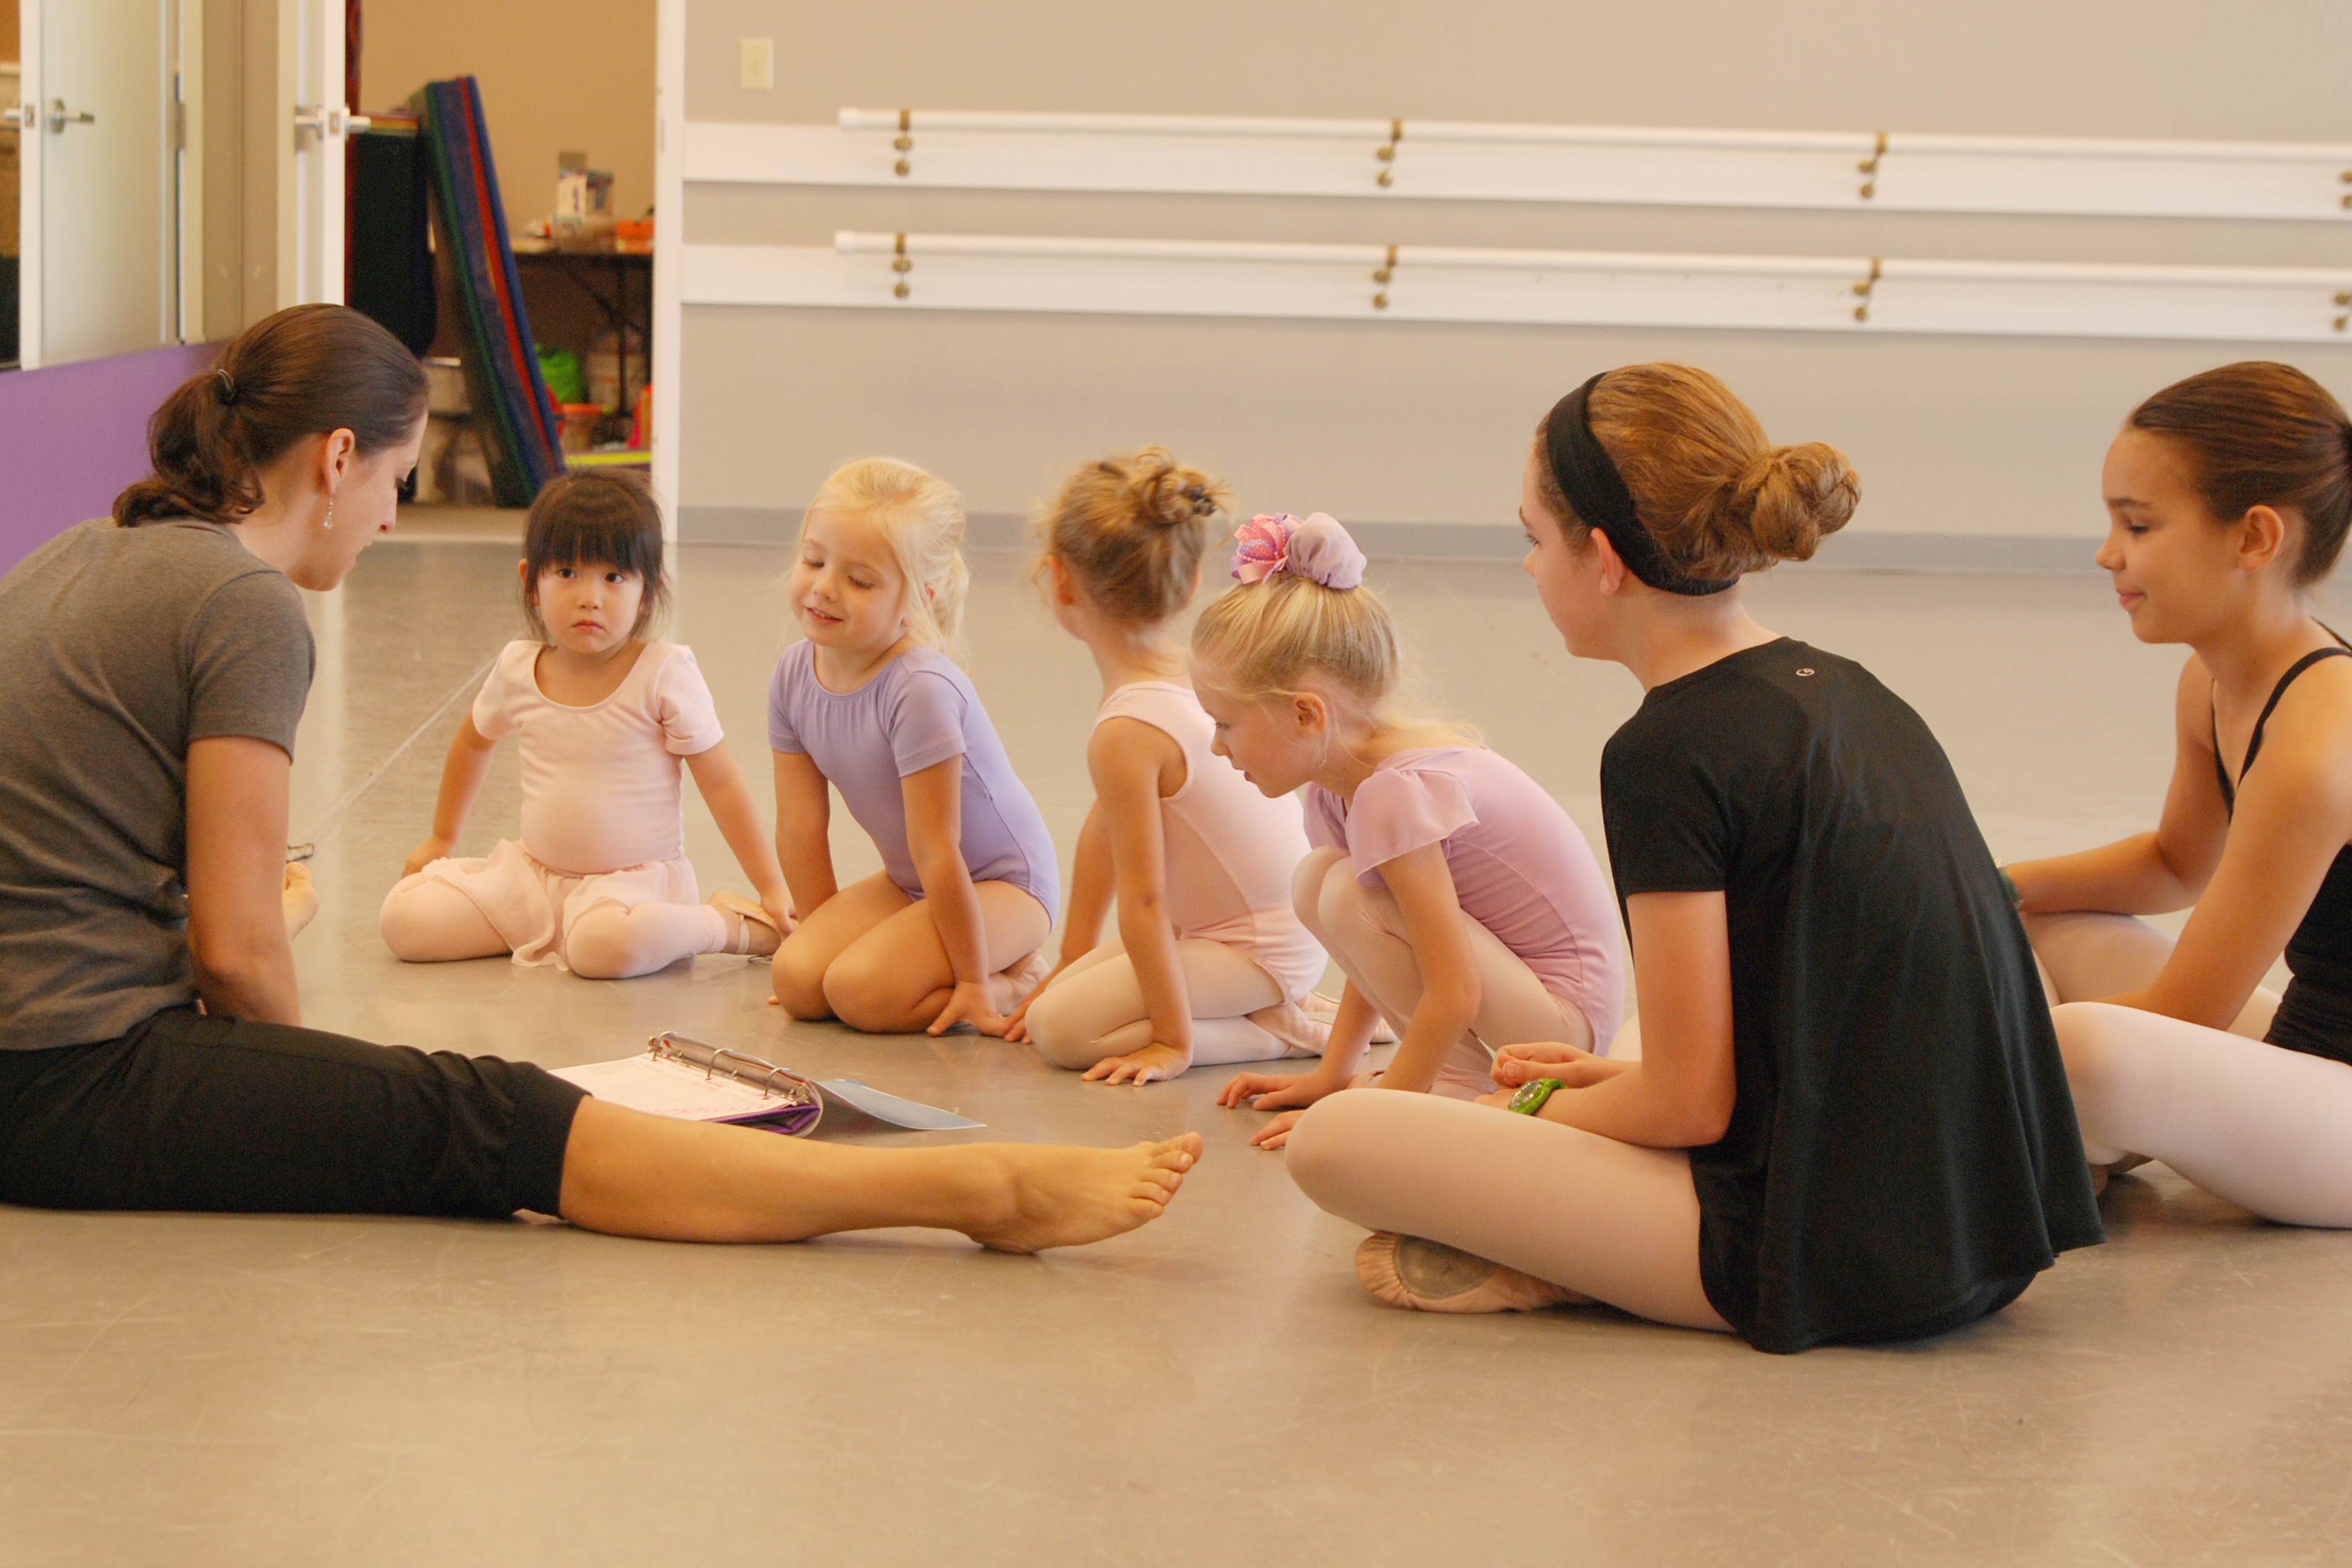 Academy of Ballet/Academy Performing Ensemble image 14